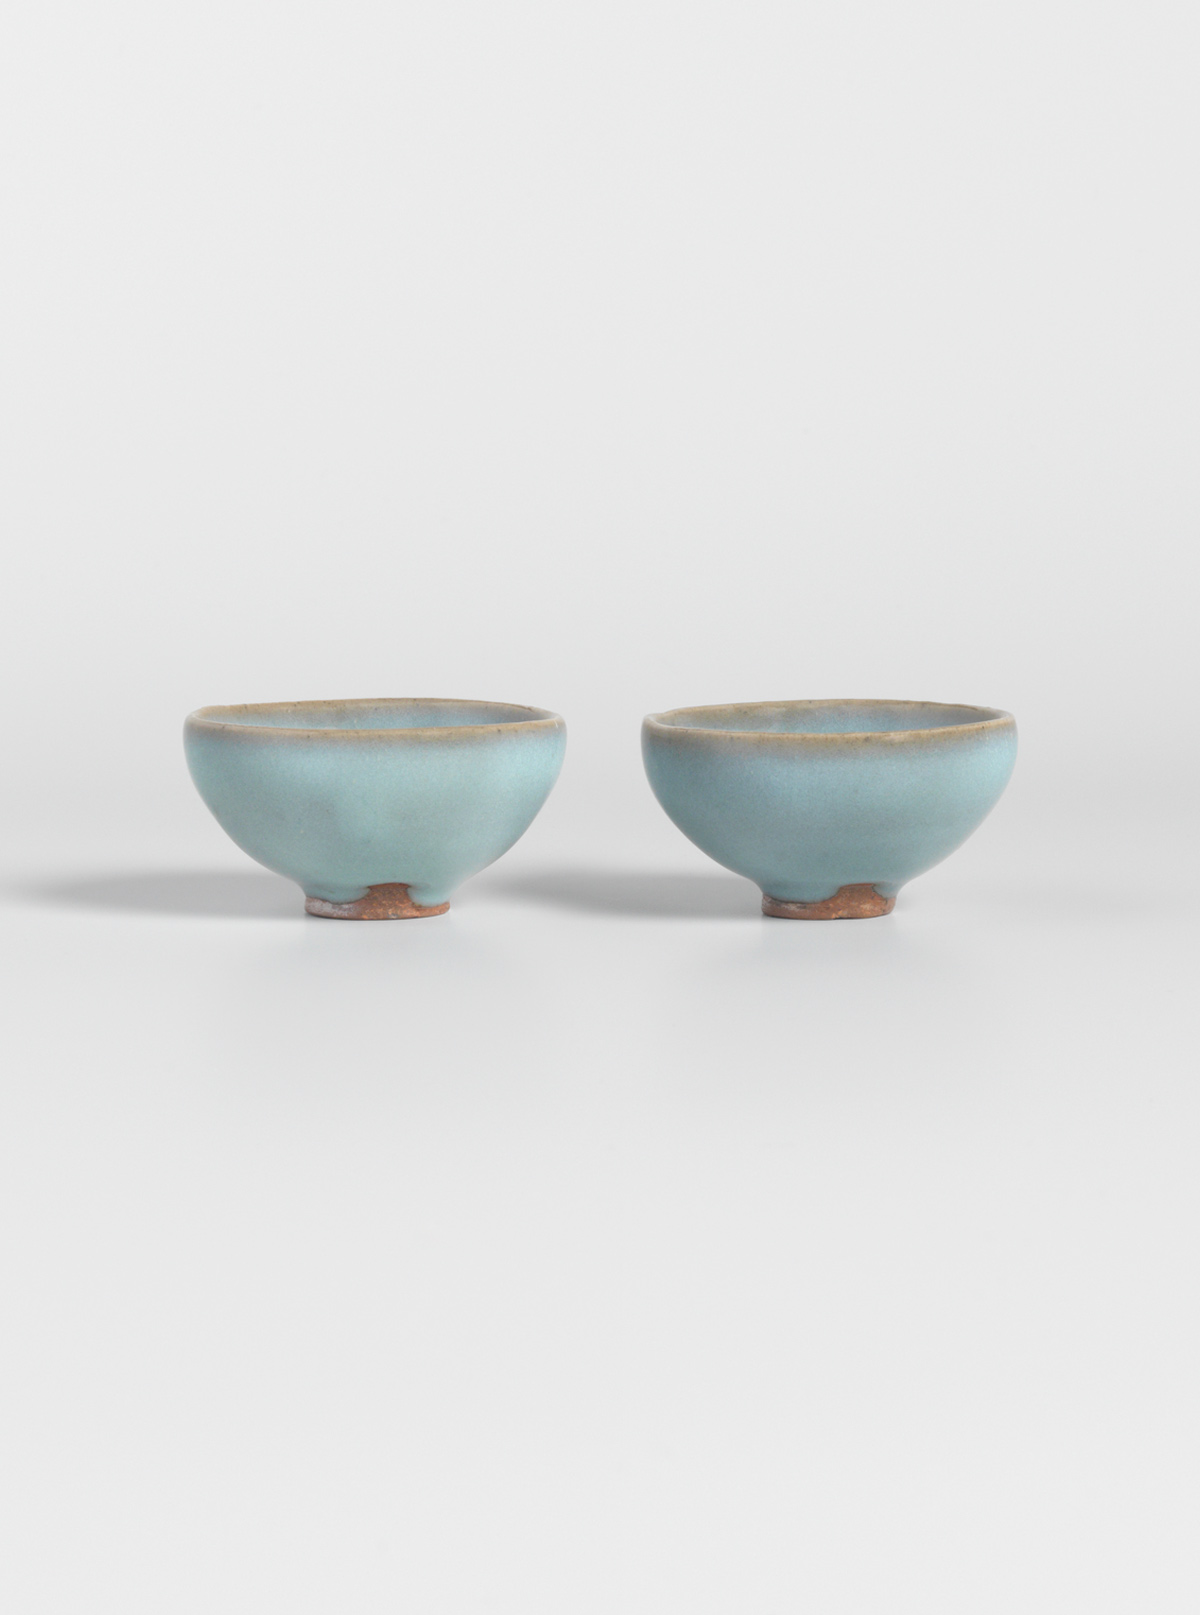 Pair of small glazed stoneware bowls